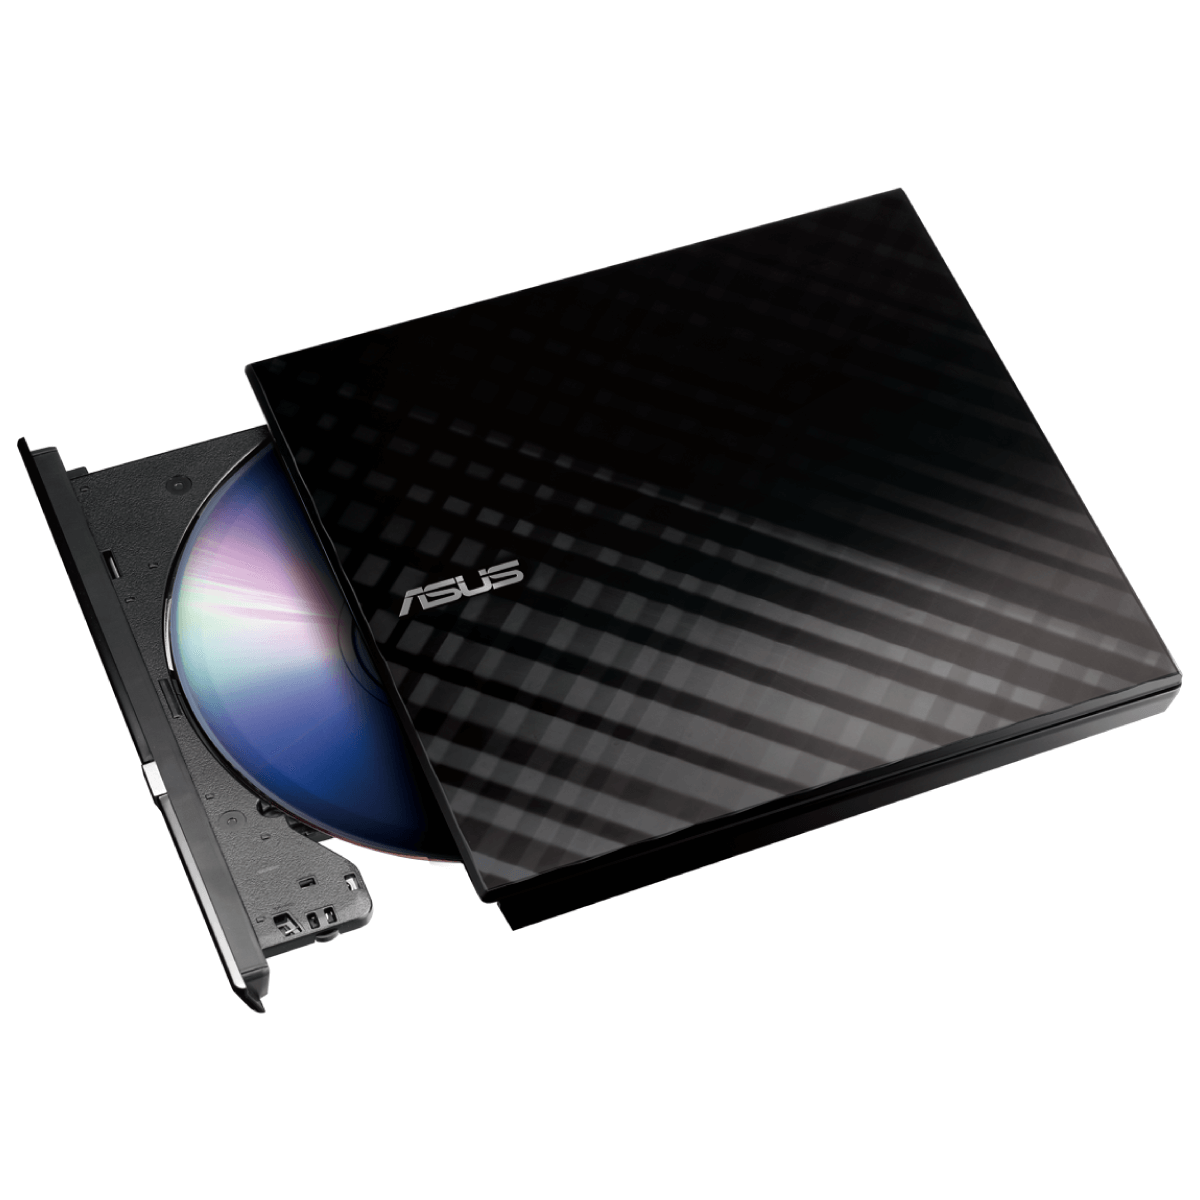 ASUS 8X External Slim DVD Writer (Black)